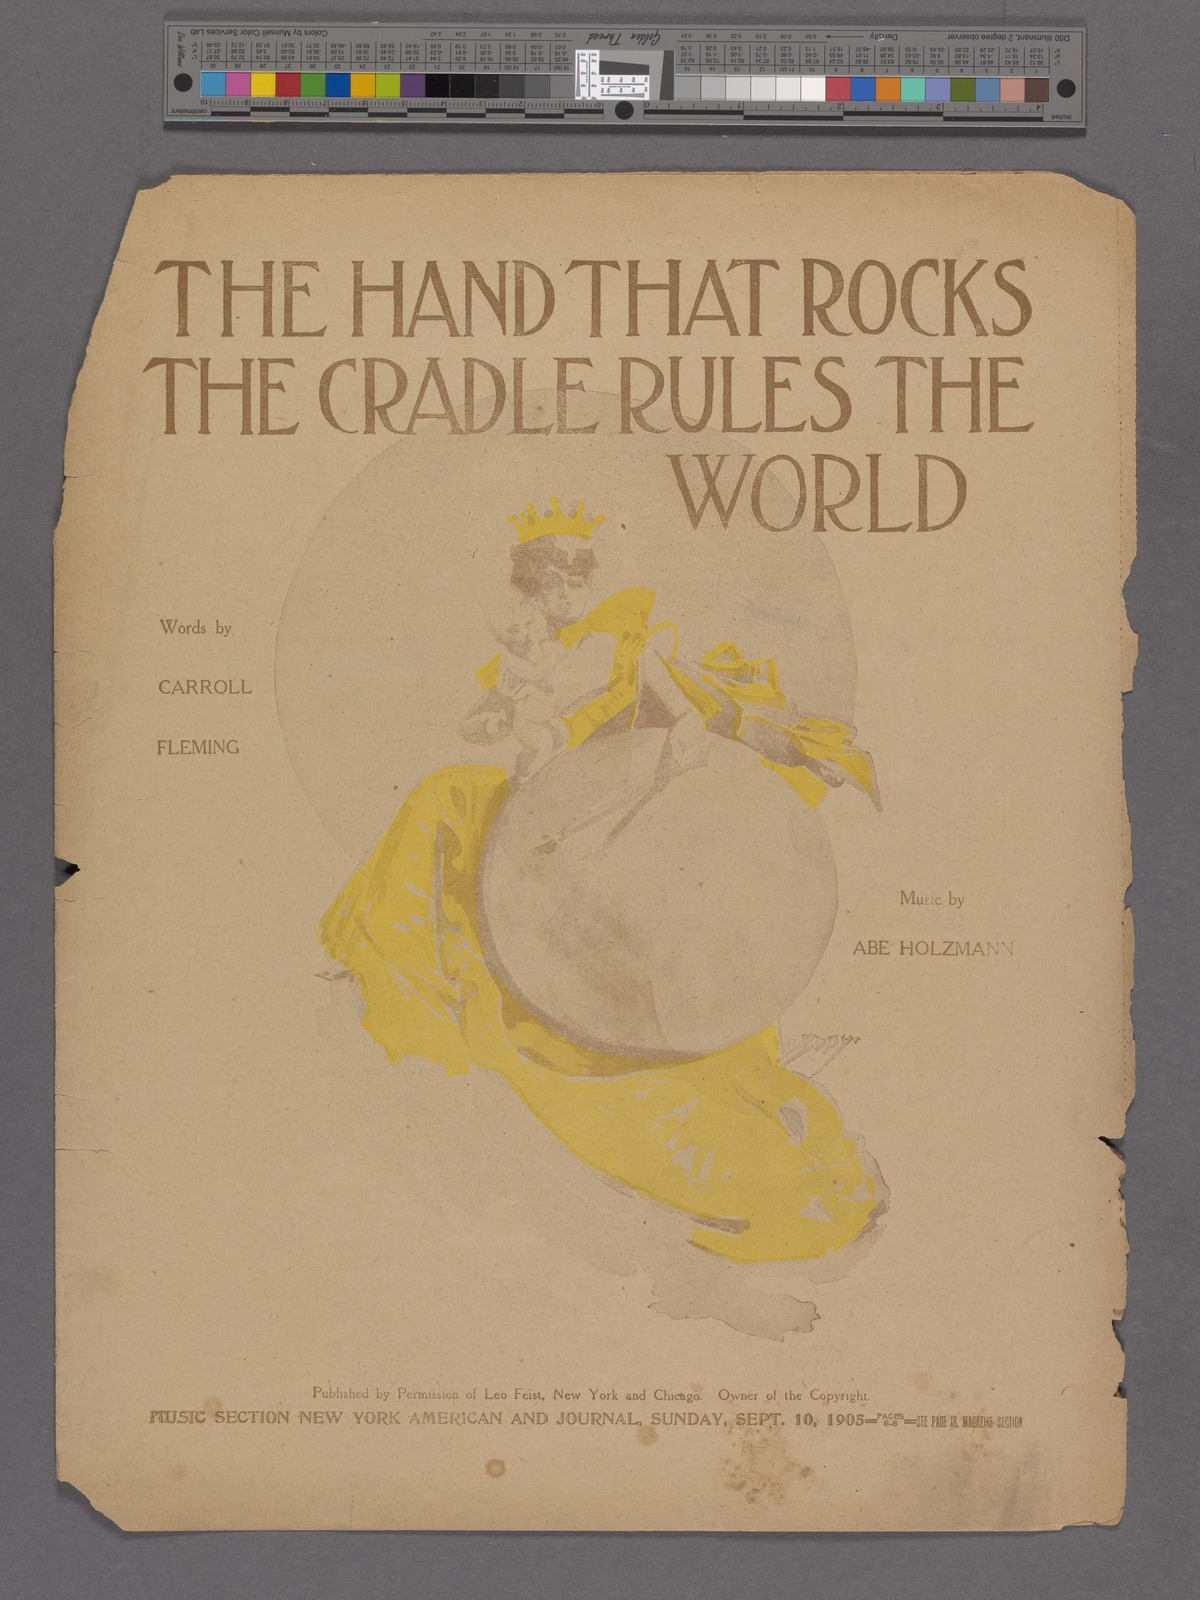 The hand that rocks the cradle rules the world